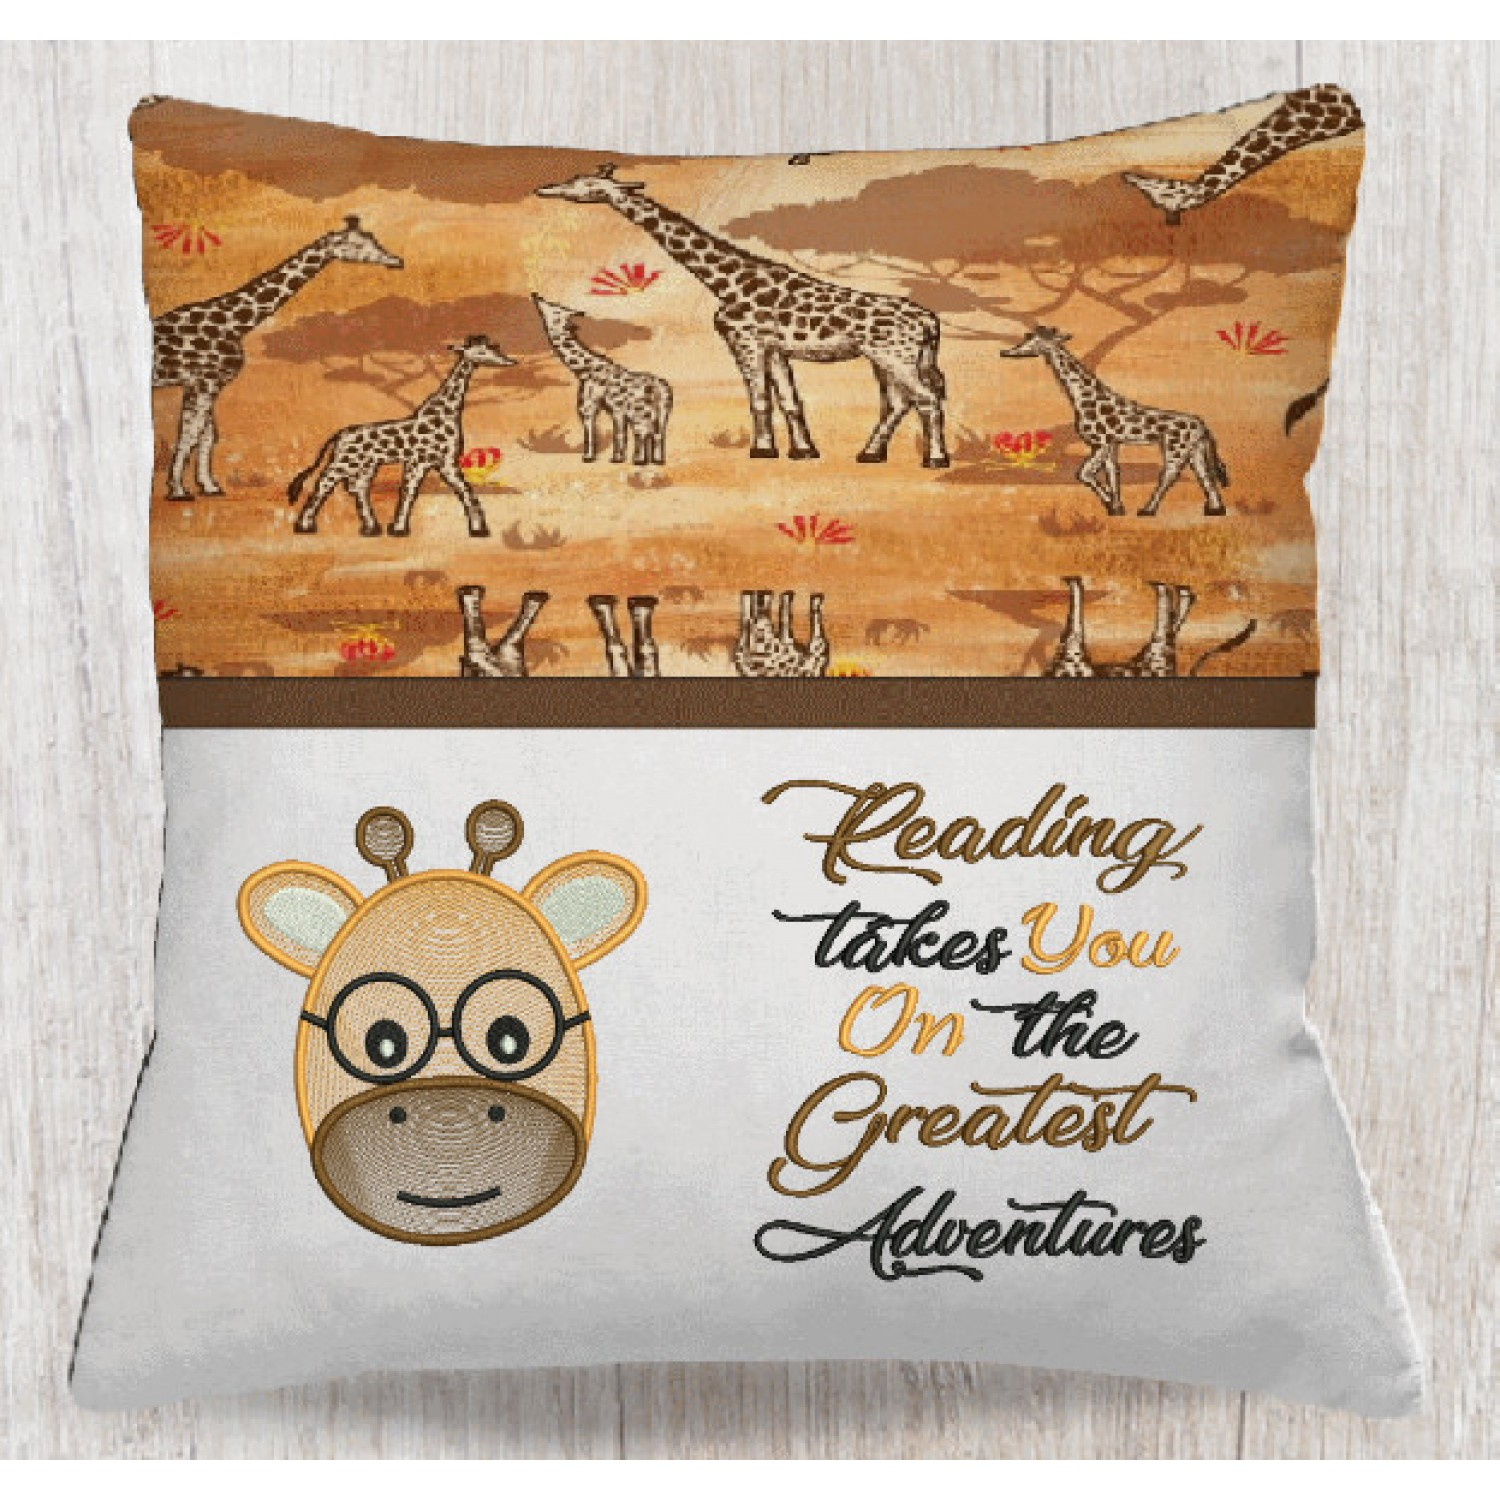 Giraffe Face embroidery reading takes you